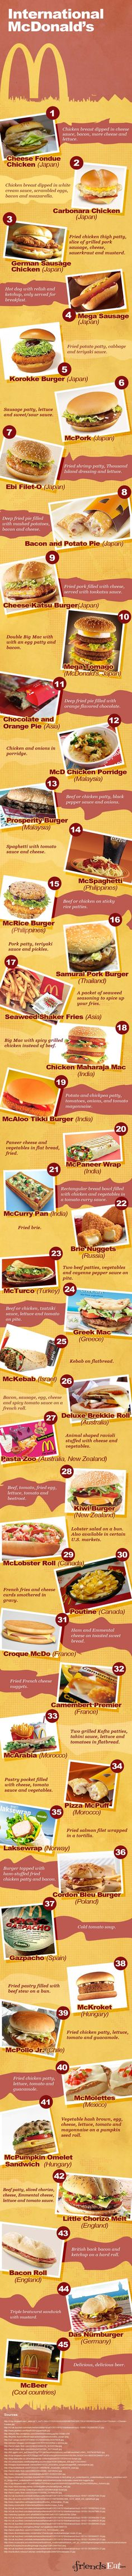 Food infographic International McDonald (Infographic) why don't we get to eat such yummy thin… Infographic Description International McDonald (Infographic) why don't we get to eat such yummy things at our McDonald's? Mcdonald Menu, Nutrition Classes, Different Countries, Secret Menu, Partying Hard, Menu Items, Great Friends, Copycat Recipes, Meals For One